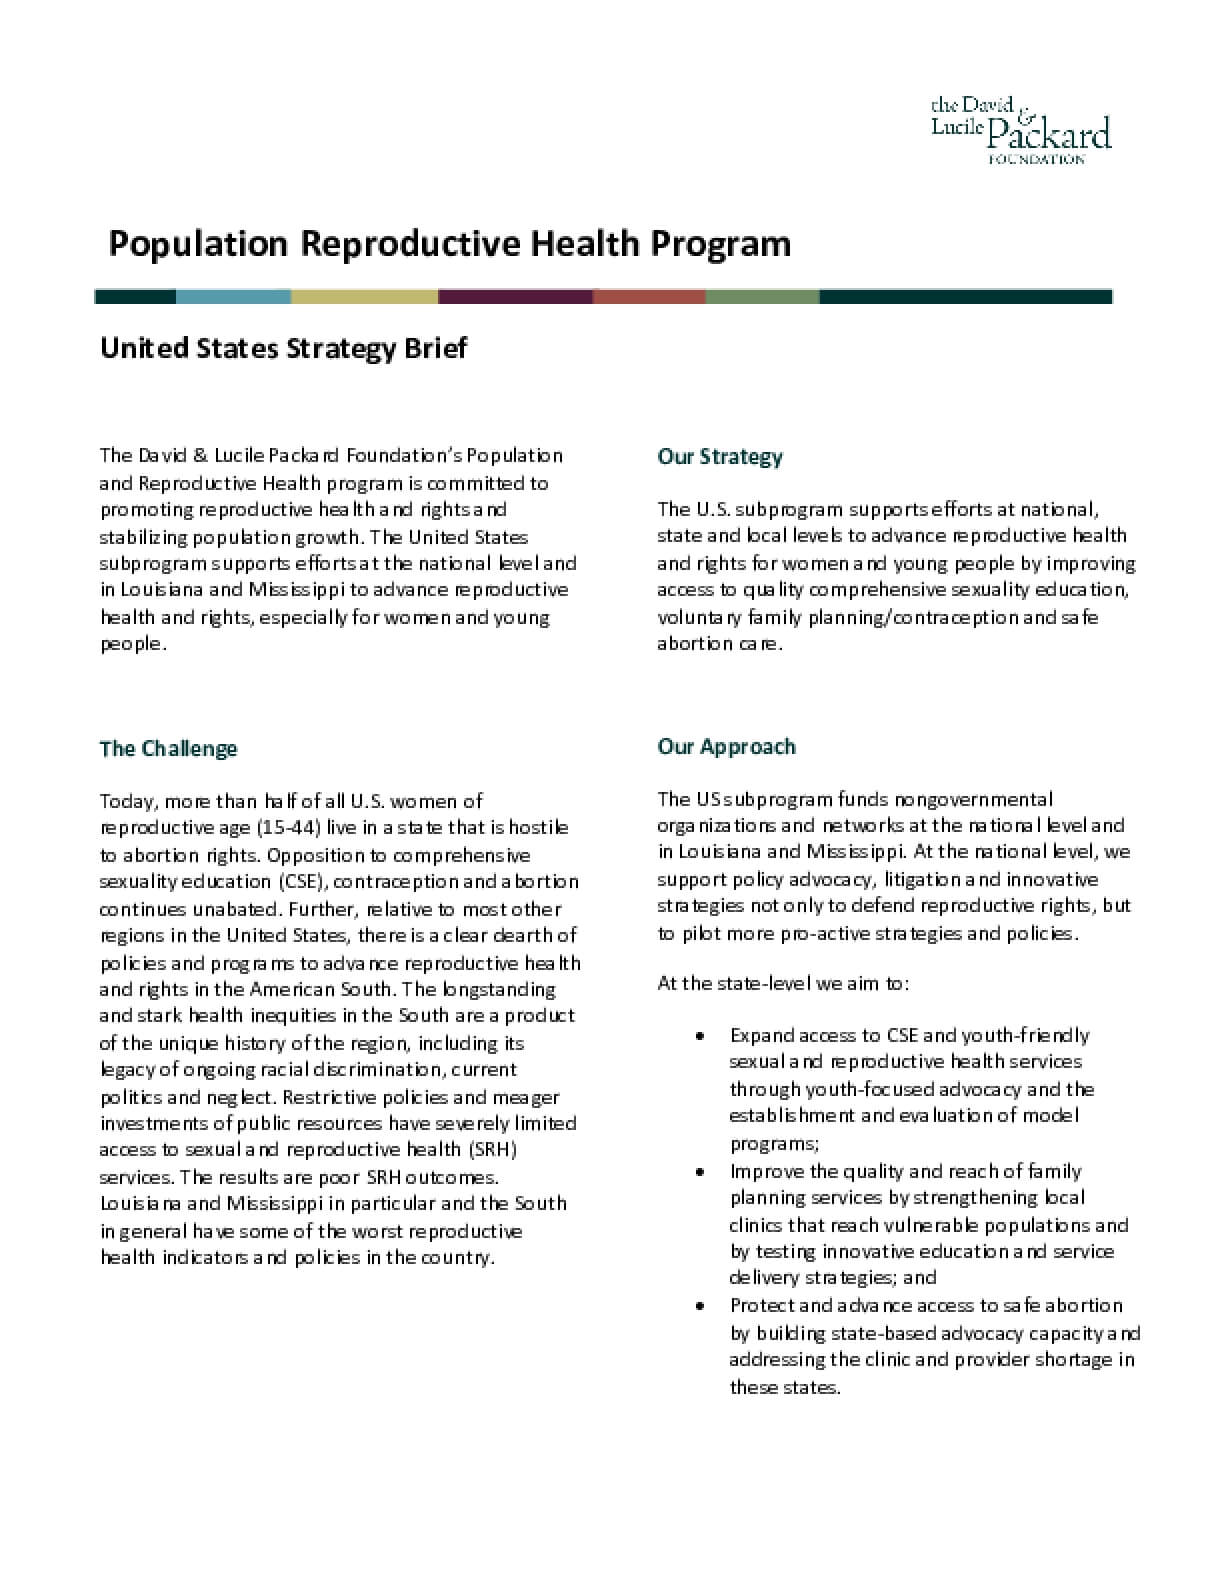 Population Reproductive Health Program: United States Strategy Brief